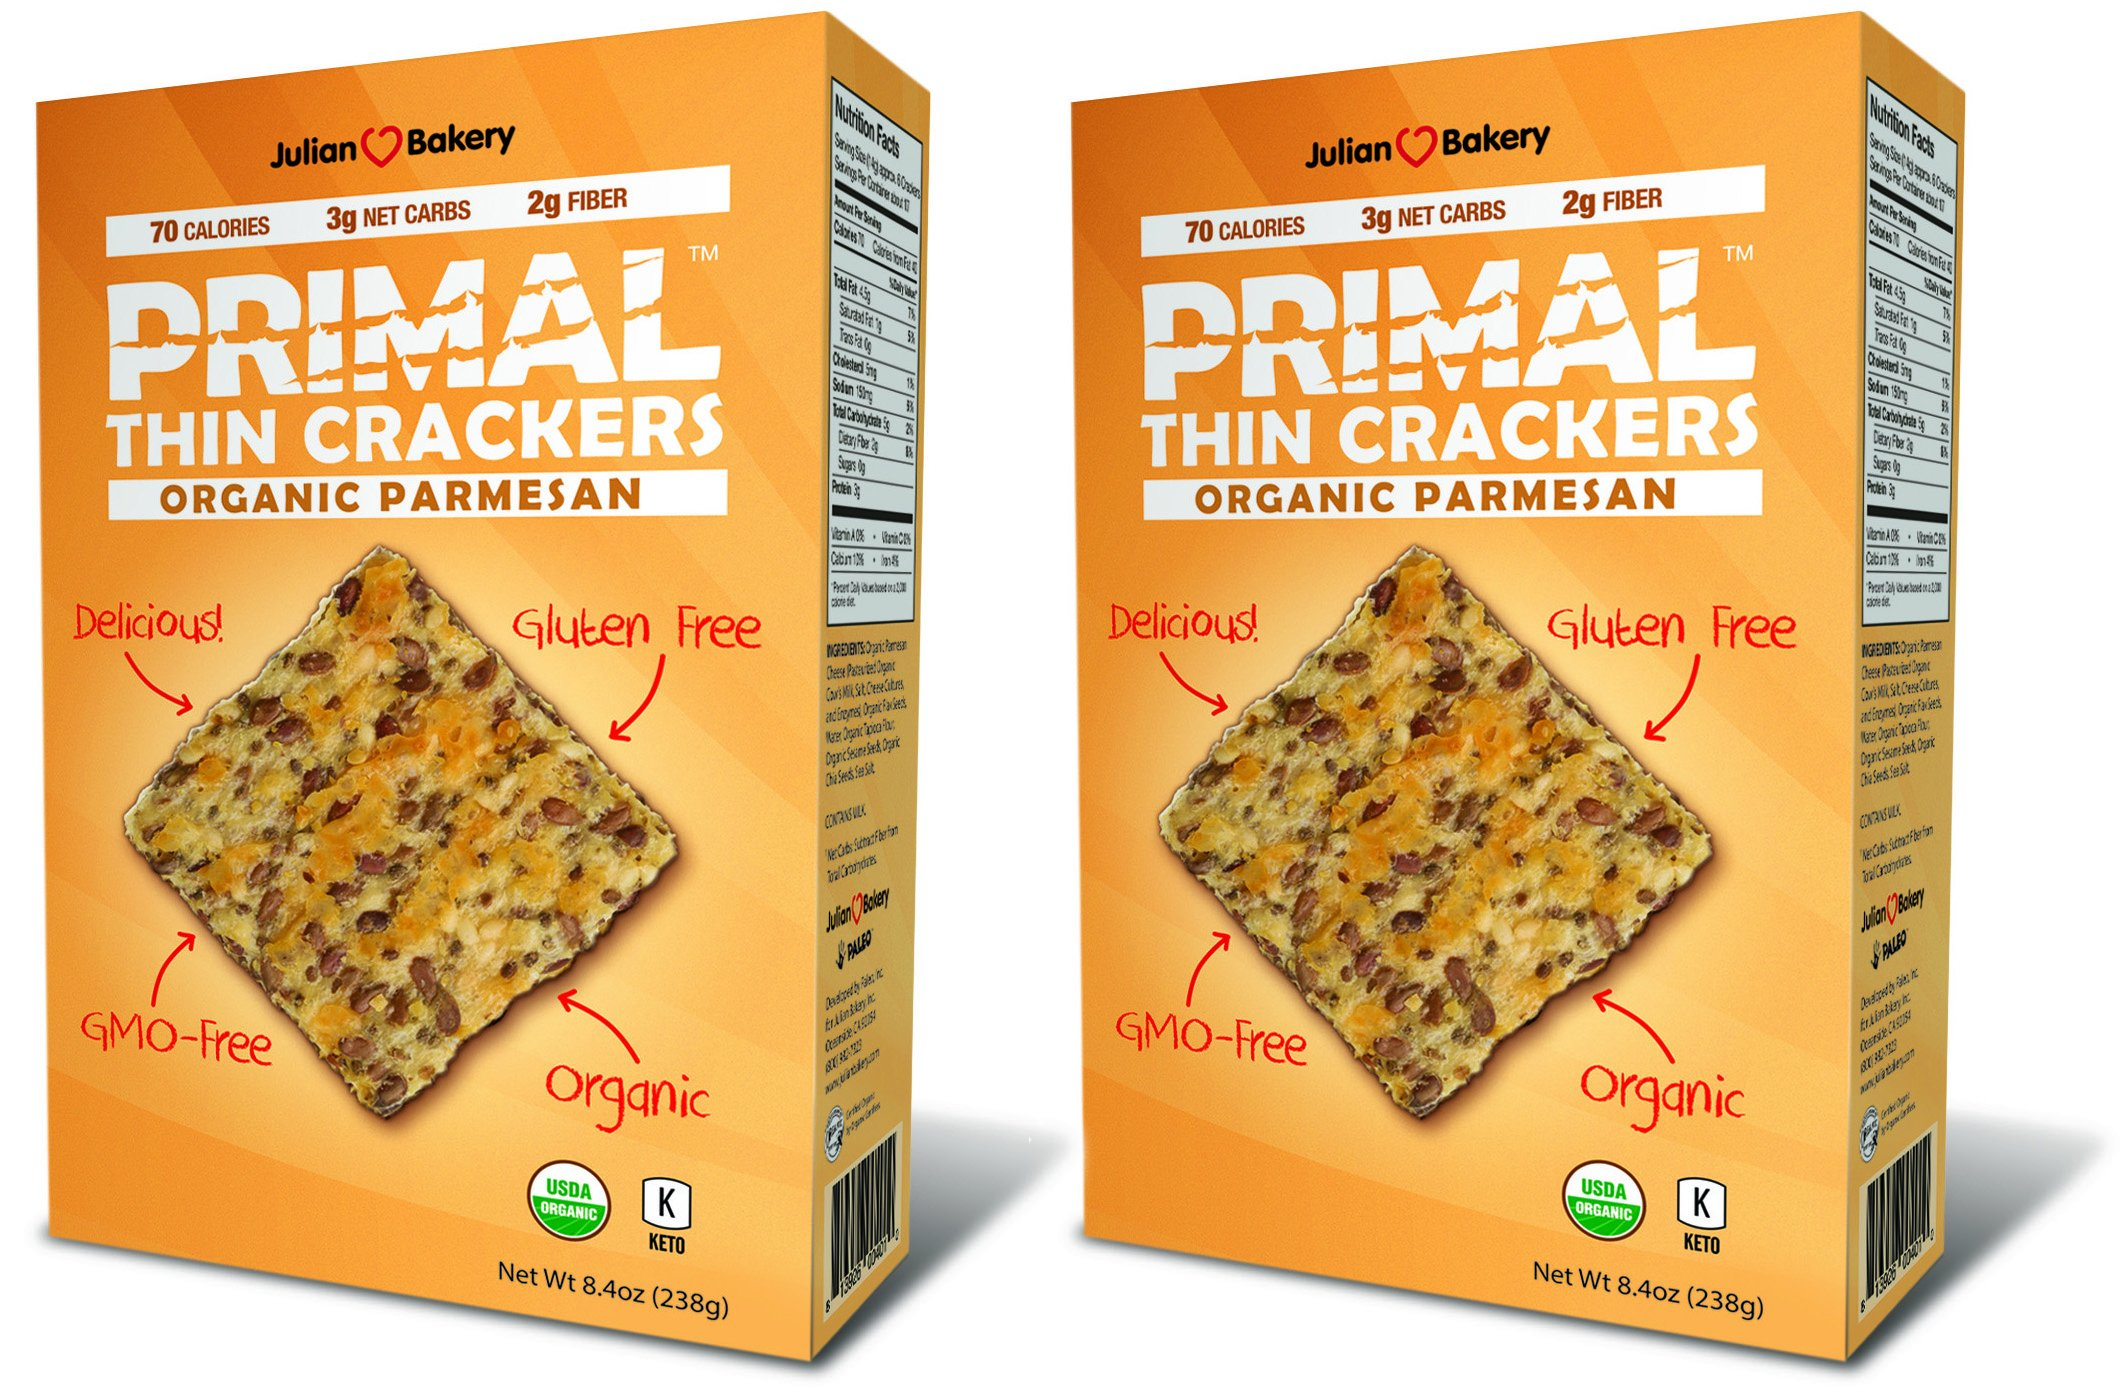 Primal Thin Crackers (Organic) (2 Pack) (Low Carb, Gluten-Free, Grain-Free) (Organic Parmesan) by Julian Bakery